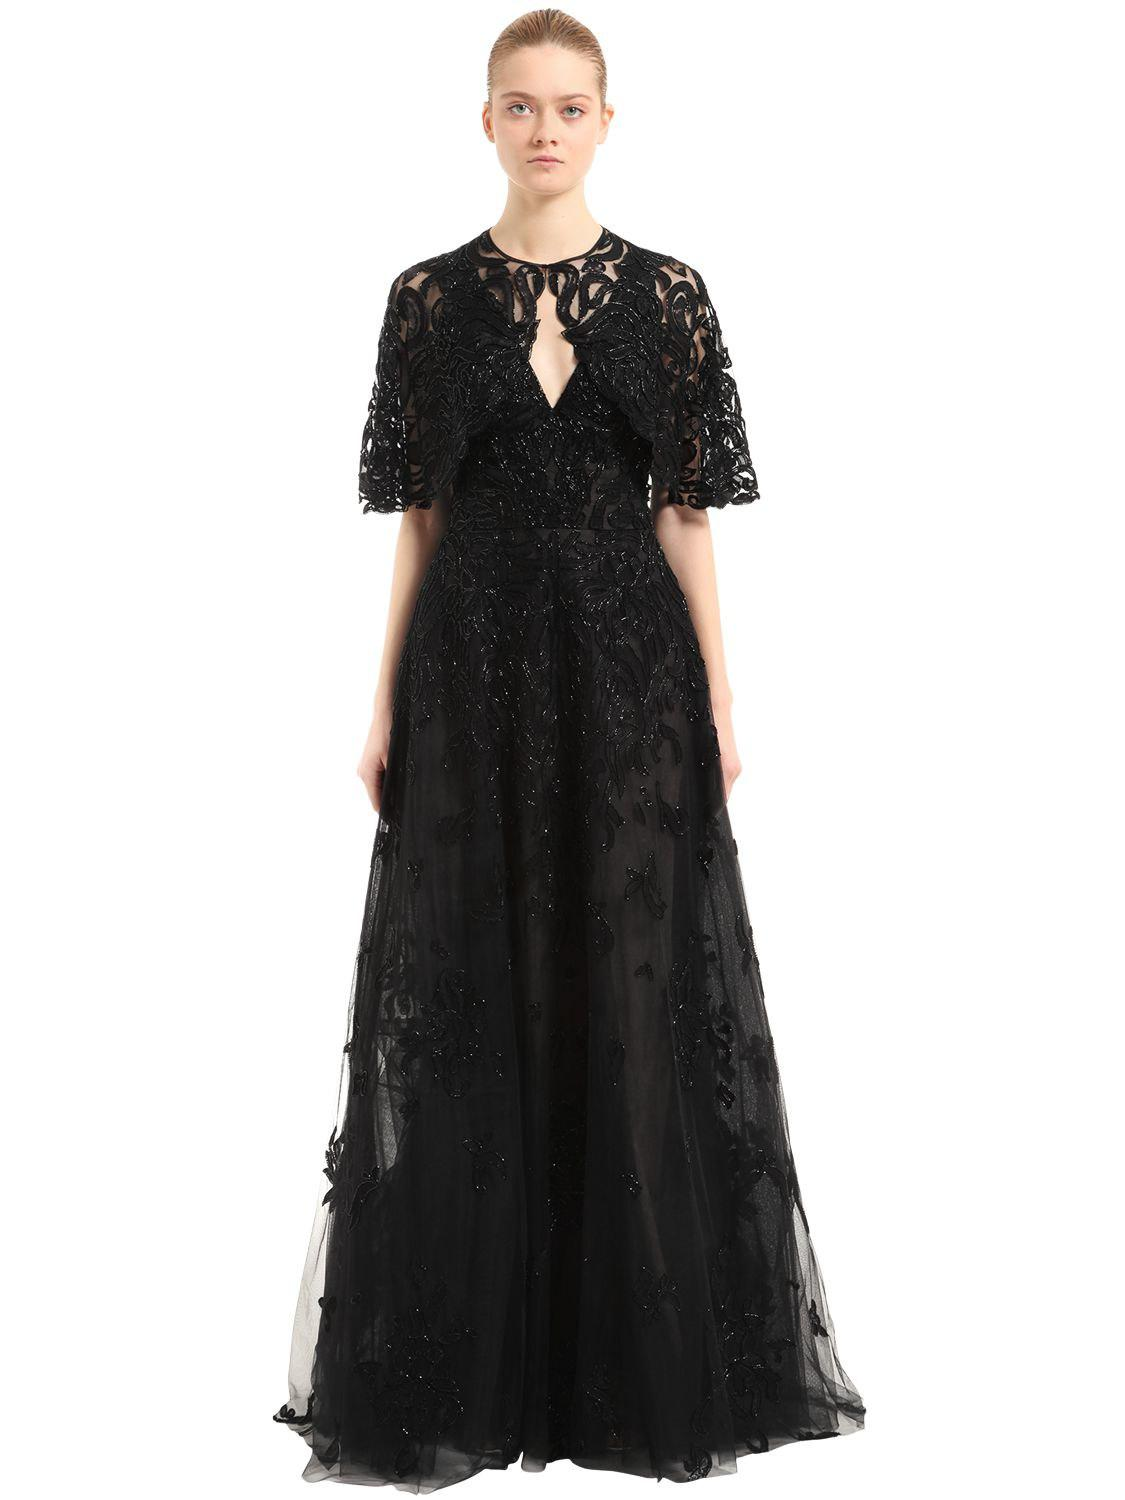 Discount Pictures Quality Free Shipping Low Price Zuhair Murad Woman Embellished Silk And Cotton-blend Voile And Velvet Mini Dress Black Size 38 Zuhair Murad Free Shipping 100% Original Outlet Low Cost gDcFAIKzF